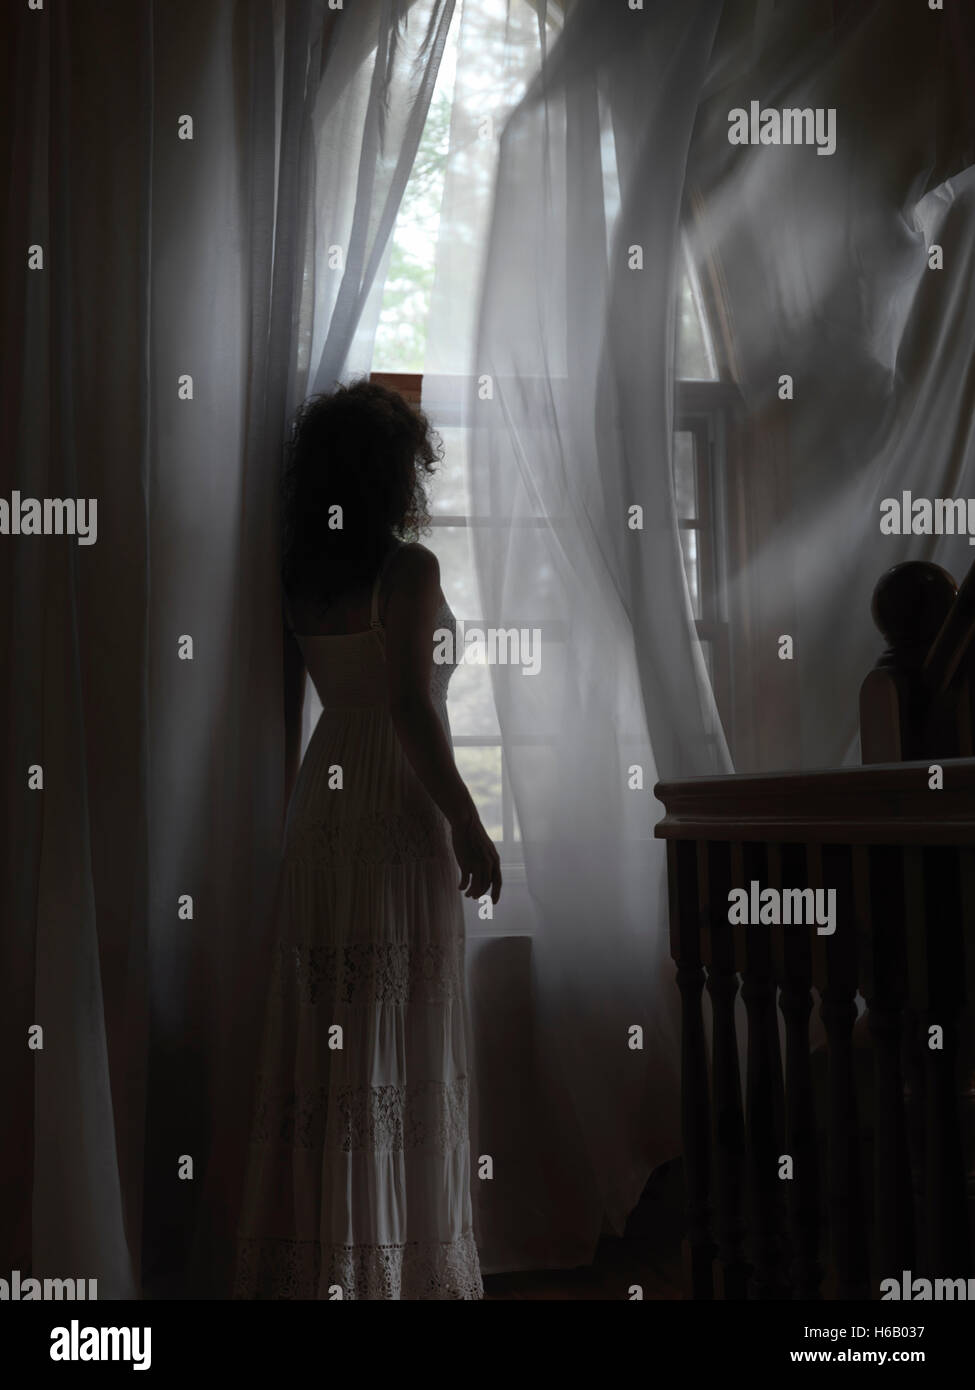 Artistic dramatic photo of a young woman in a dress standing by a window with flying in the wind curtains in a dark - Stock Image